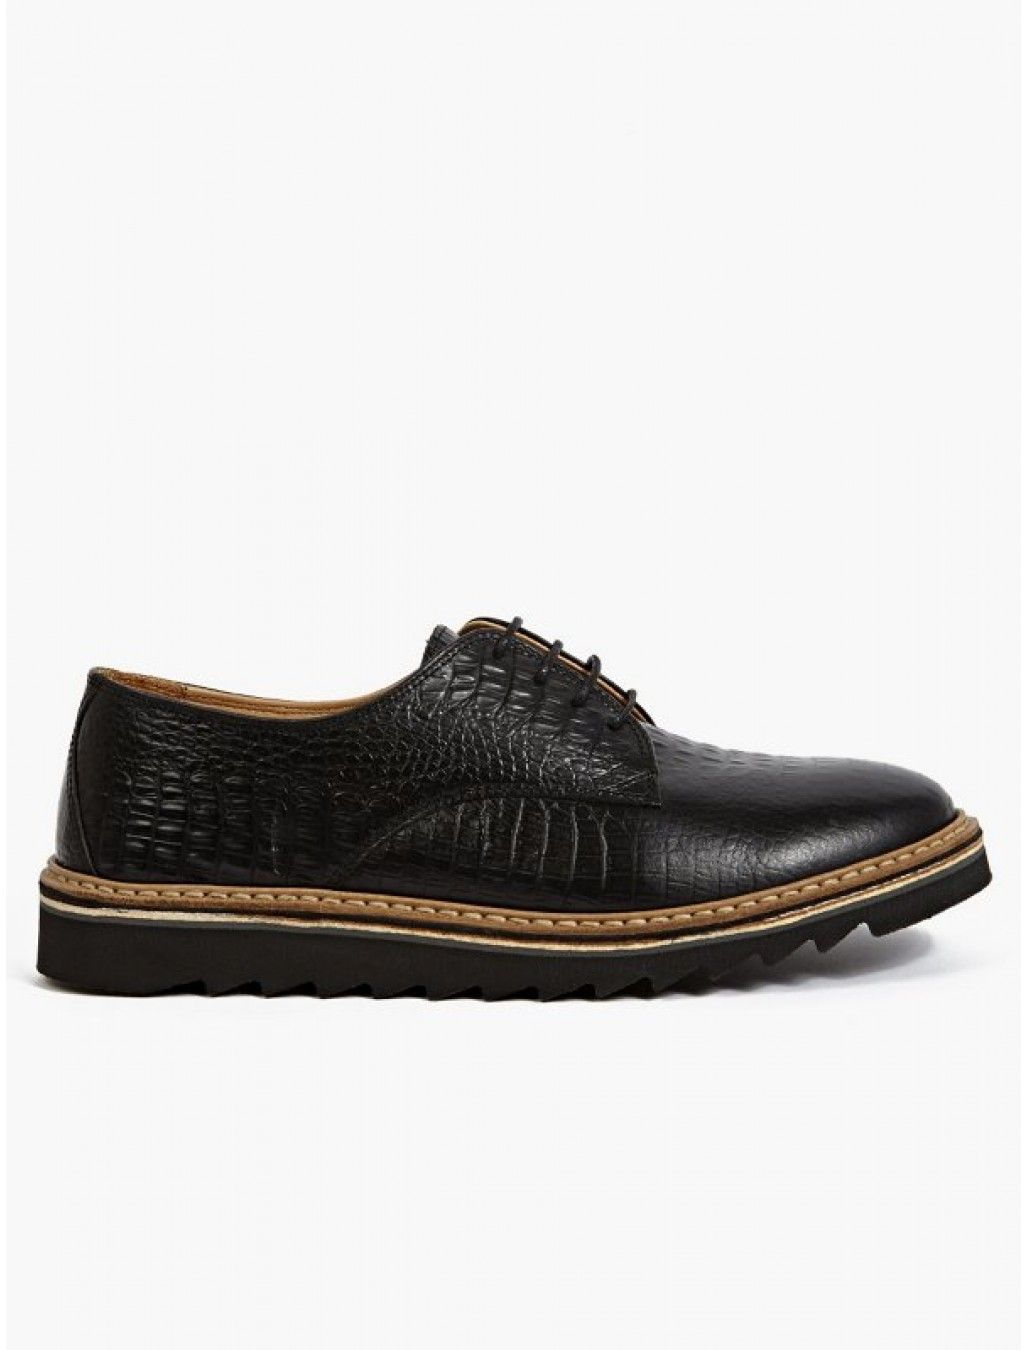 Purified Men's Crocodile Embossed Leather Derby Shoes